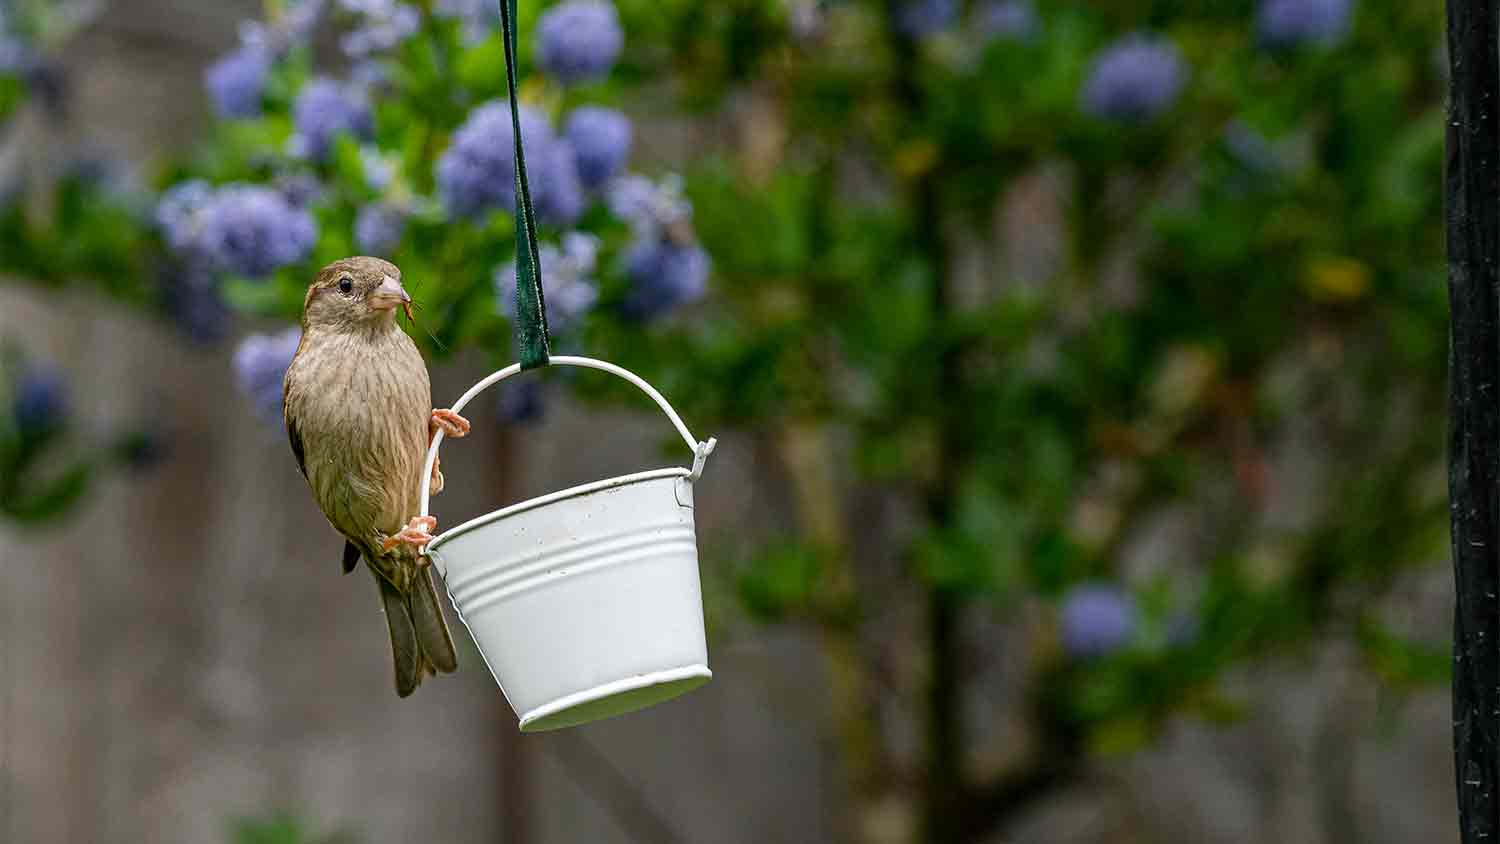 A bird taking an insect out of a small hanging bucket